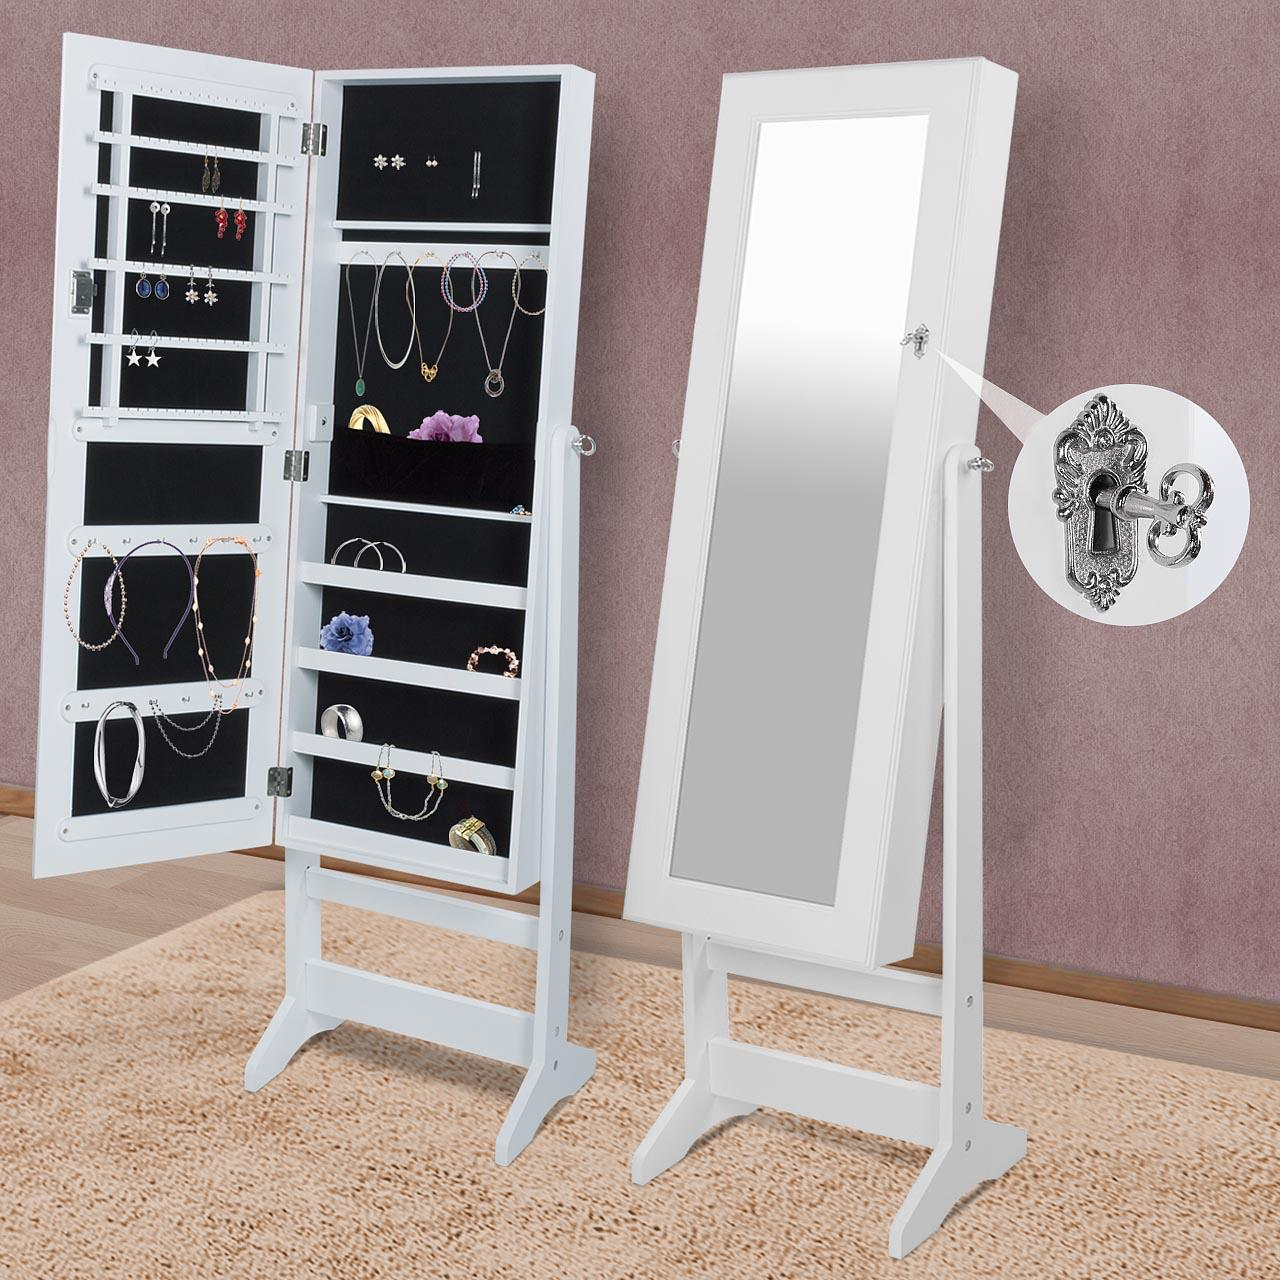 spiegel schmuckschrank schmuck spiegelschrank standspiegel schmuckkasten wei ebay. Black Bedroom Furniture Sets. Home Design Ideas